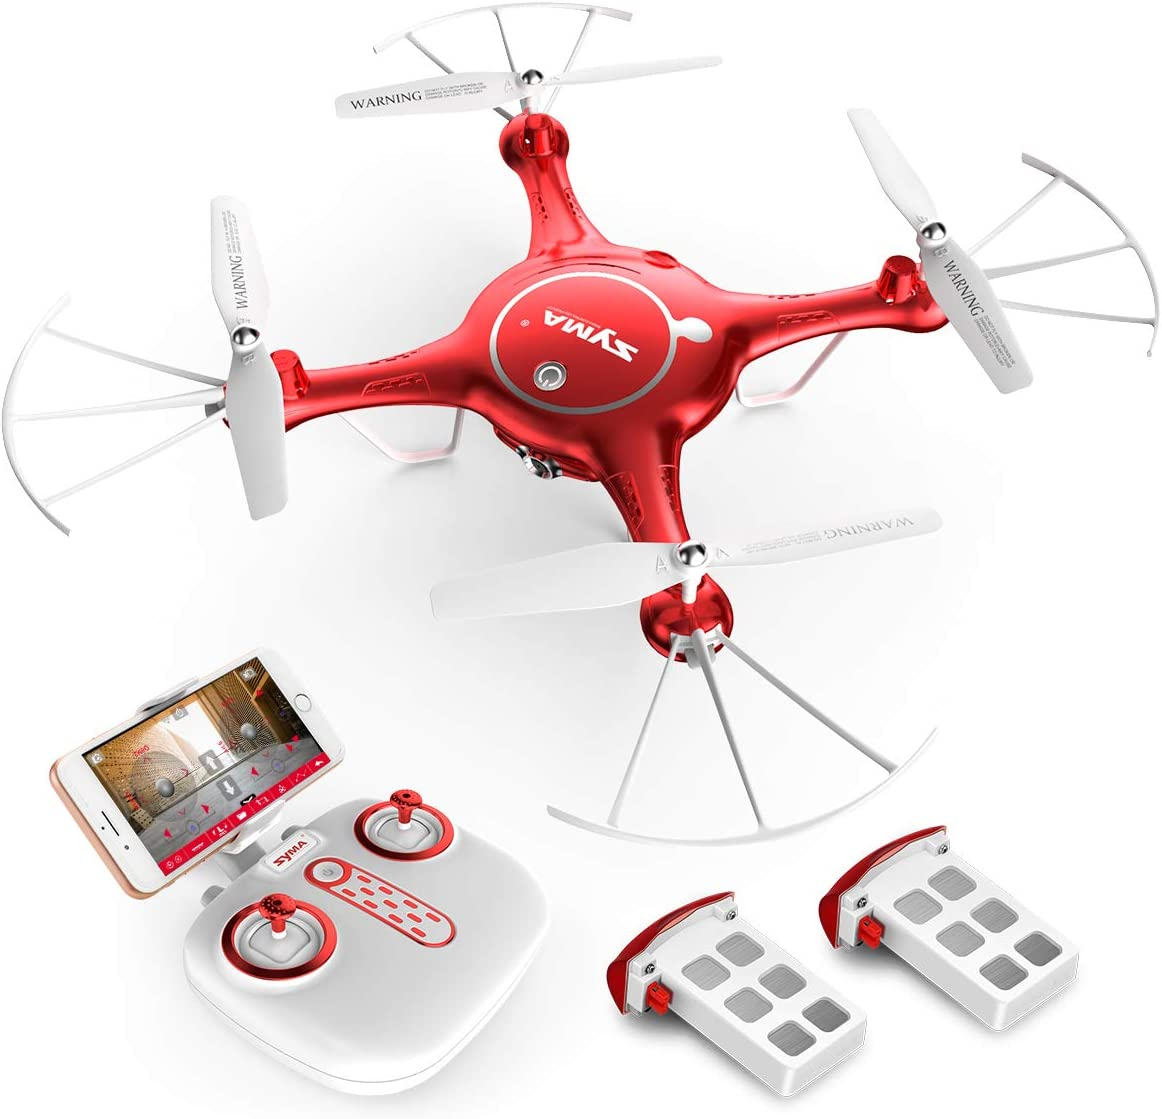 Amazon coupon code for SYMA X5UW WiFi FPV 720P HD Camera Quadcopter Drone